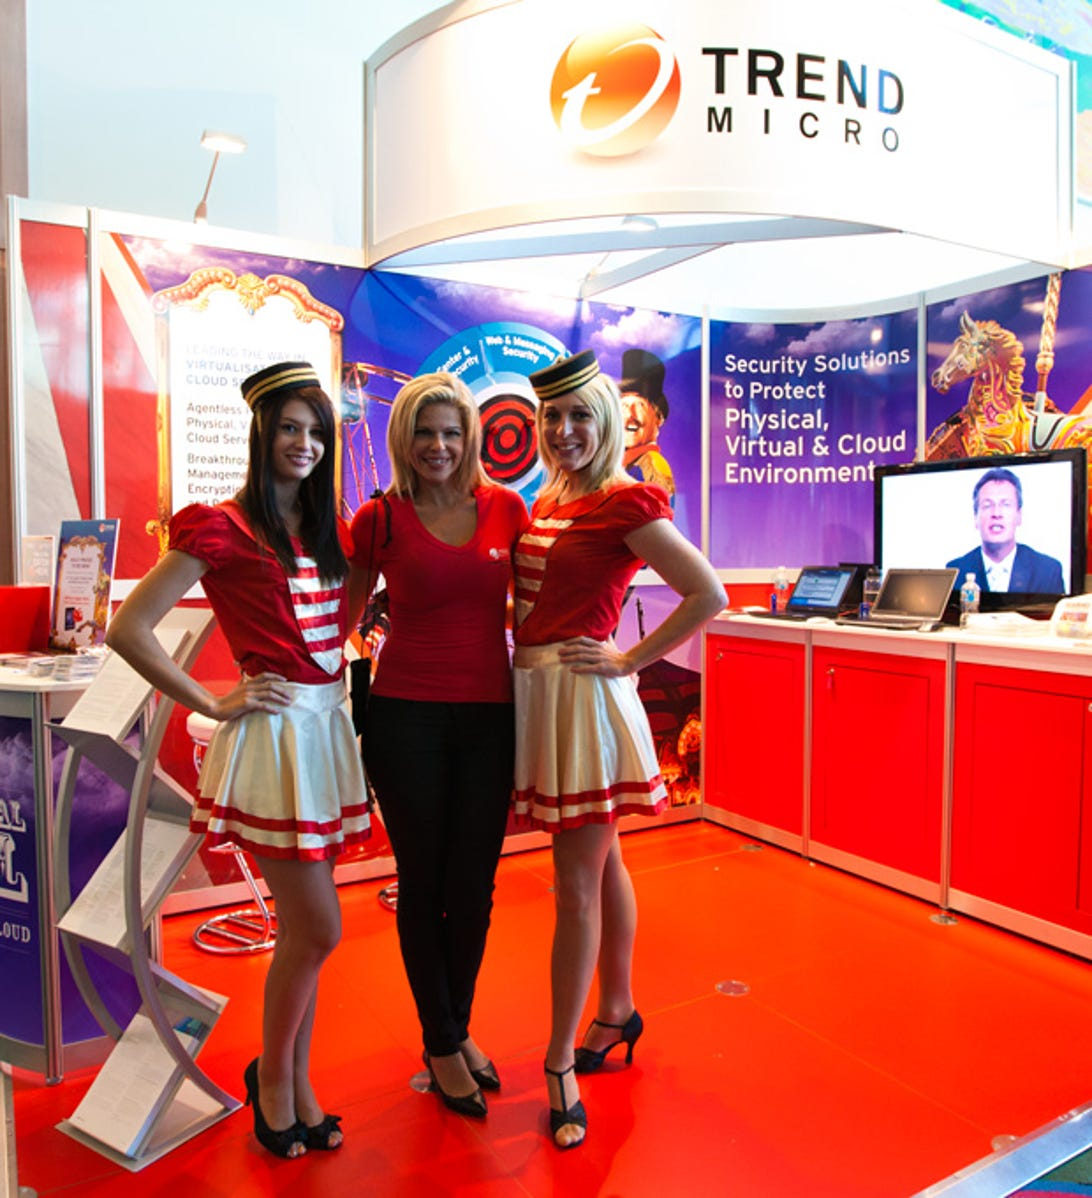 auscert-2011-booth-babes-and-all-pics10.jpg